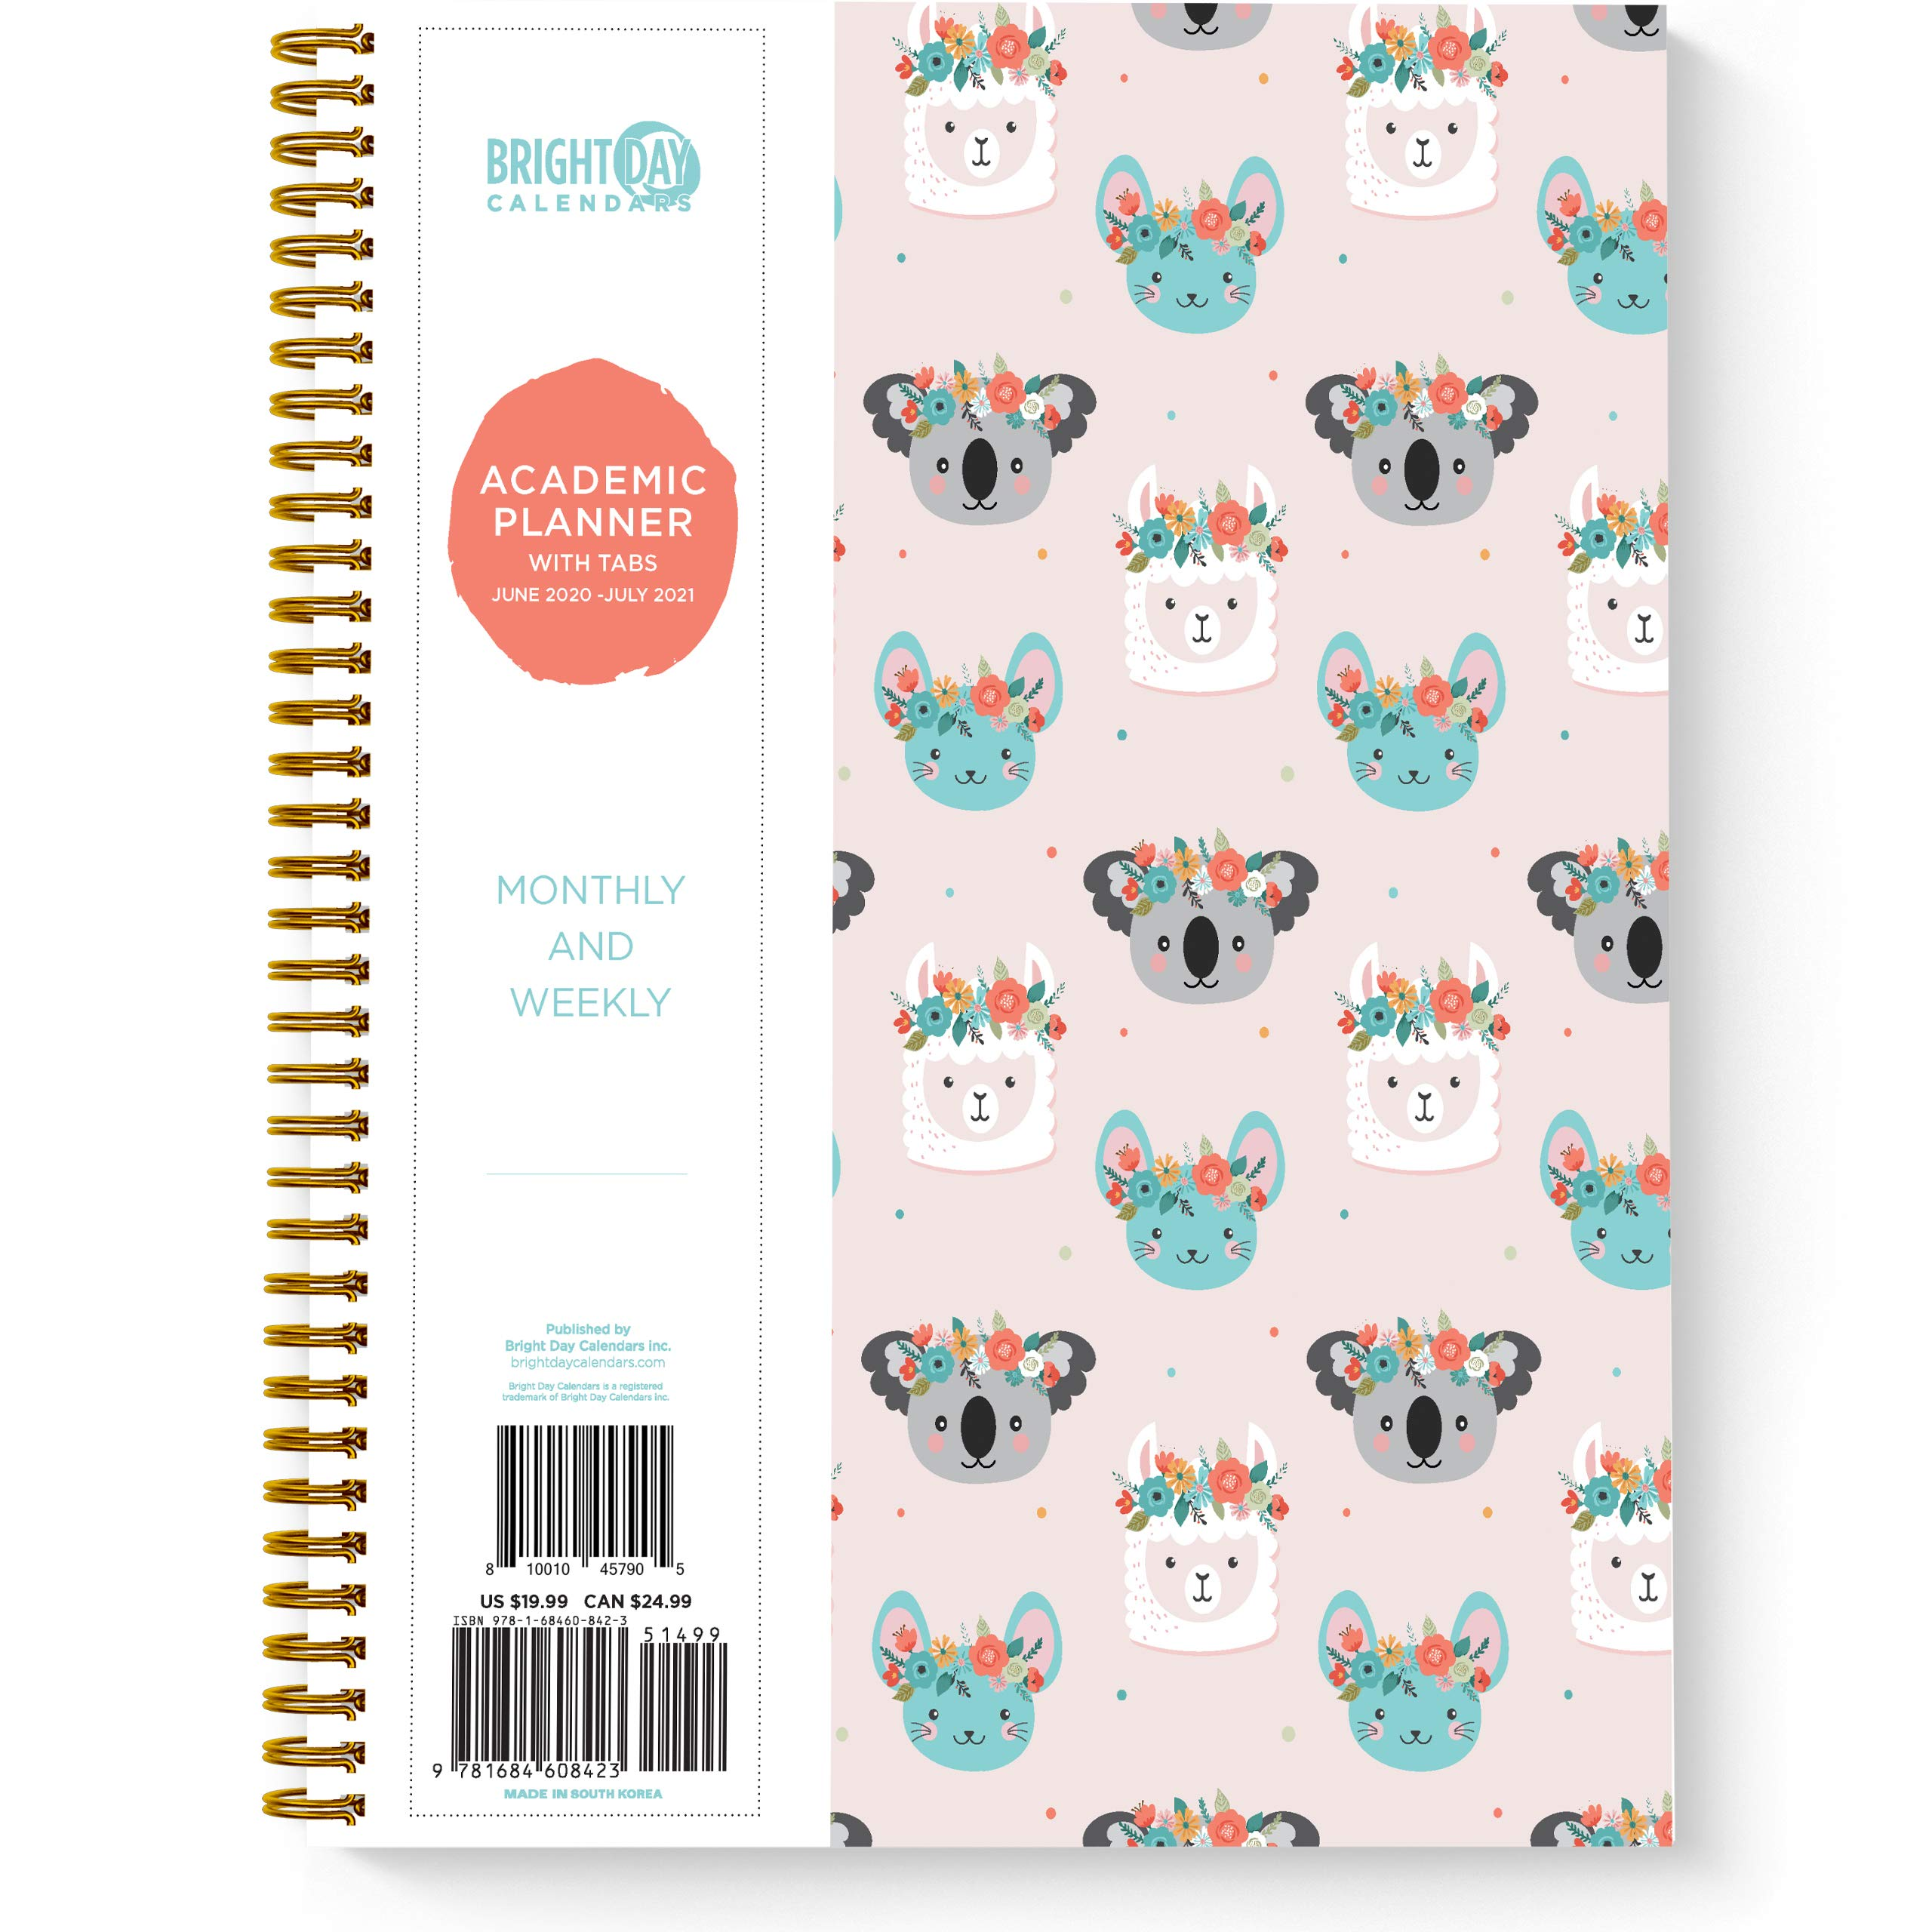 Academic Planner -Yearly Monthly Weekly Daily Calendar Organizer by Bright Day Spiral Bound Dated Agenda Flexible Cover Notebook (Flower Crown, 11 x 8.75)